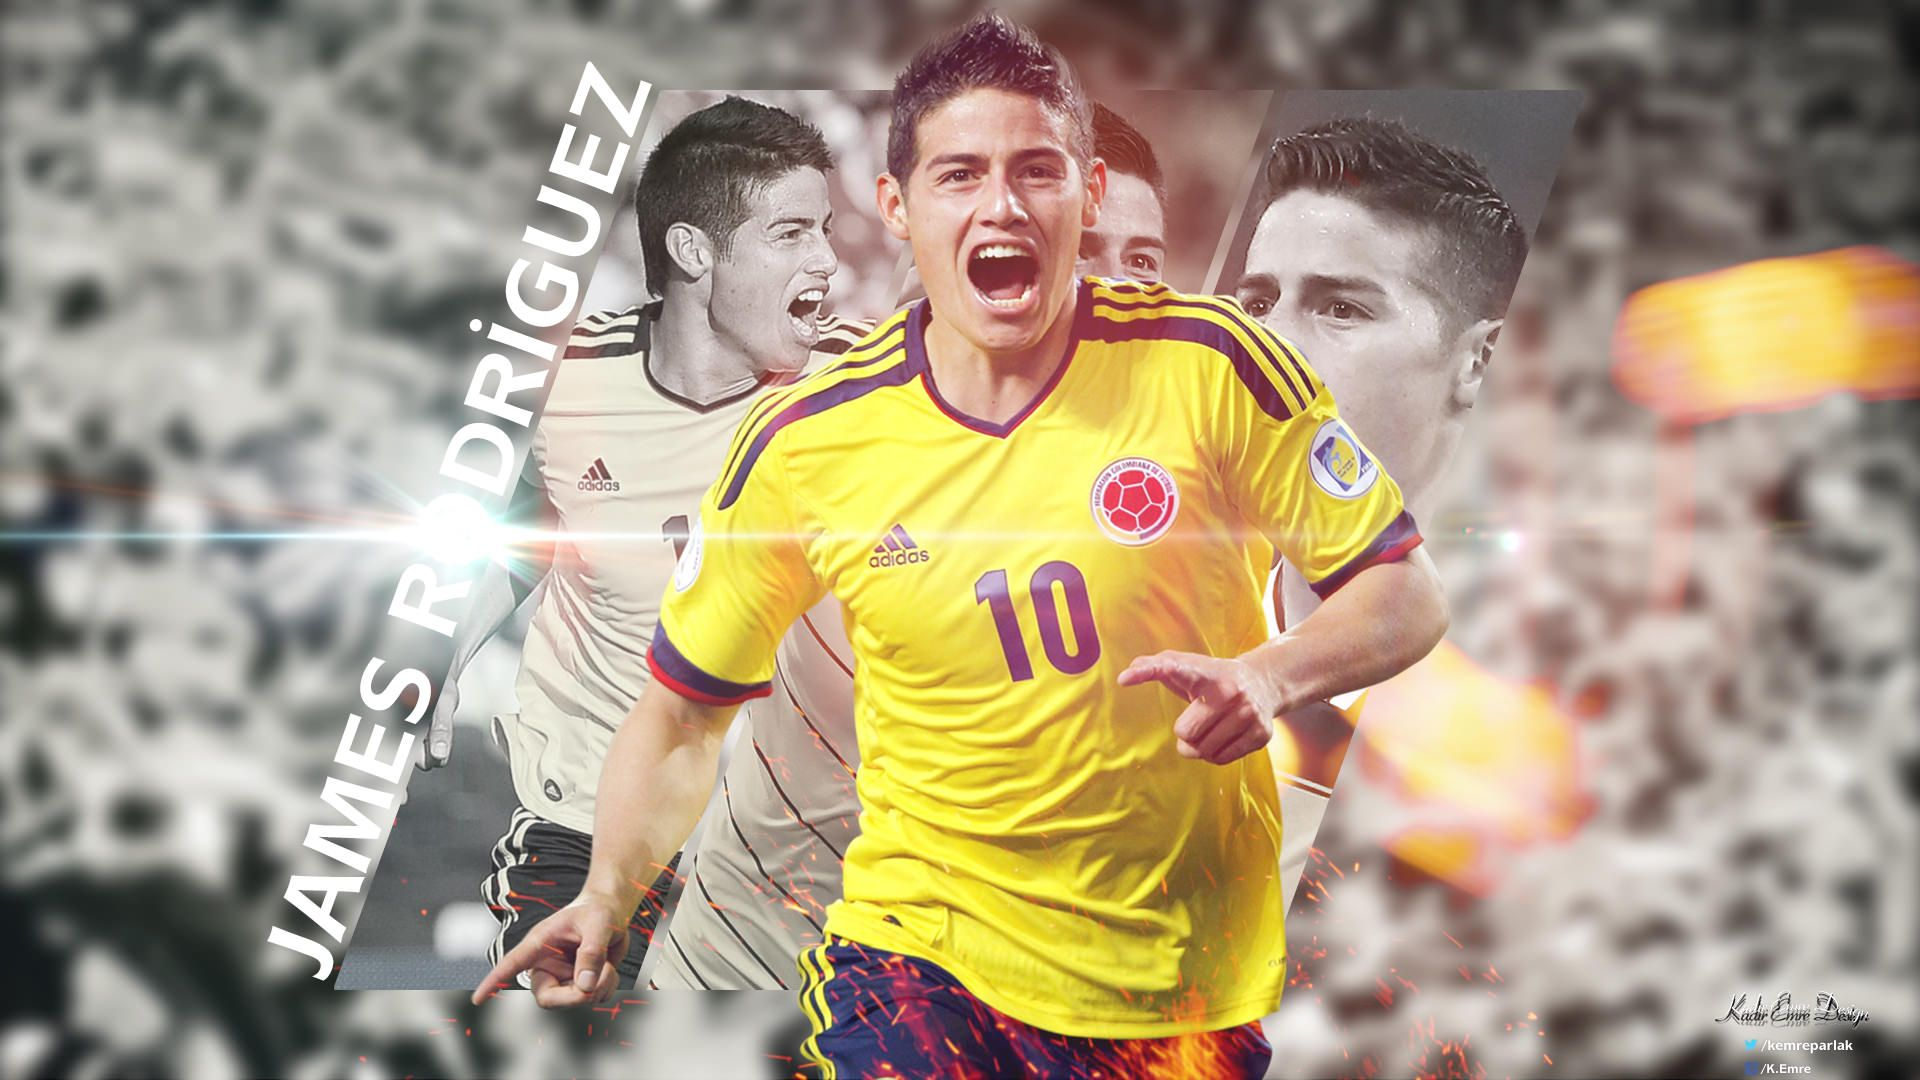 James rodriguez columbia wallpaper football wallpapers hd - James rodriguez wallpaper hd ...